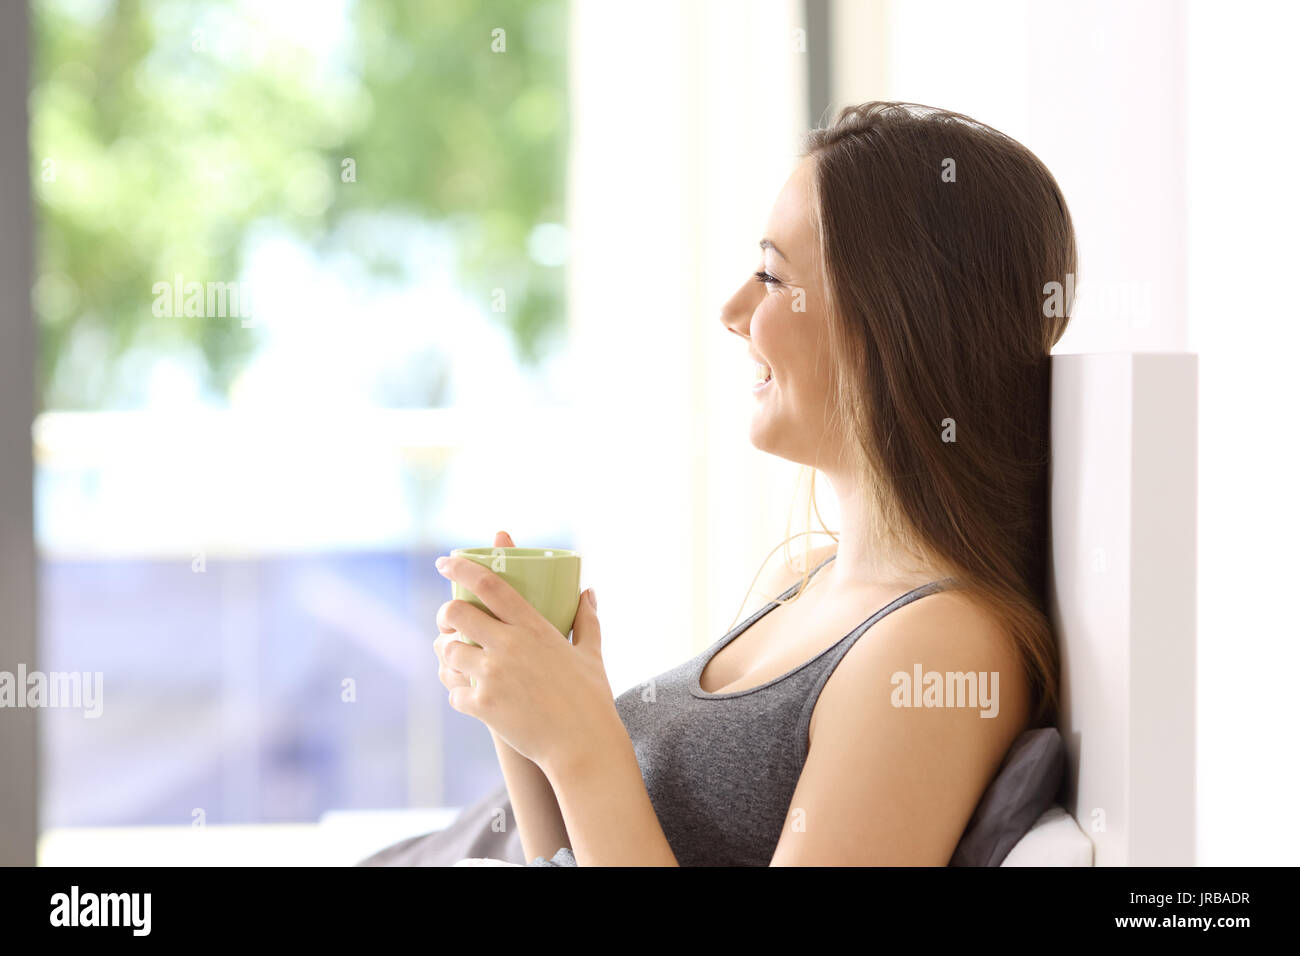 Side view of a happy single woman having breakfast on the bed of an hotel room or apartment - Stock Image